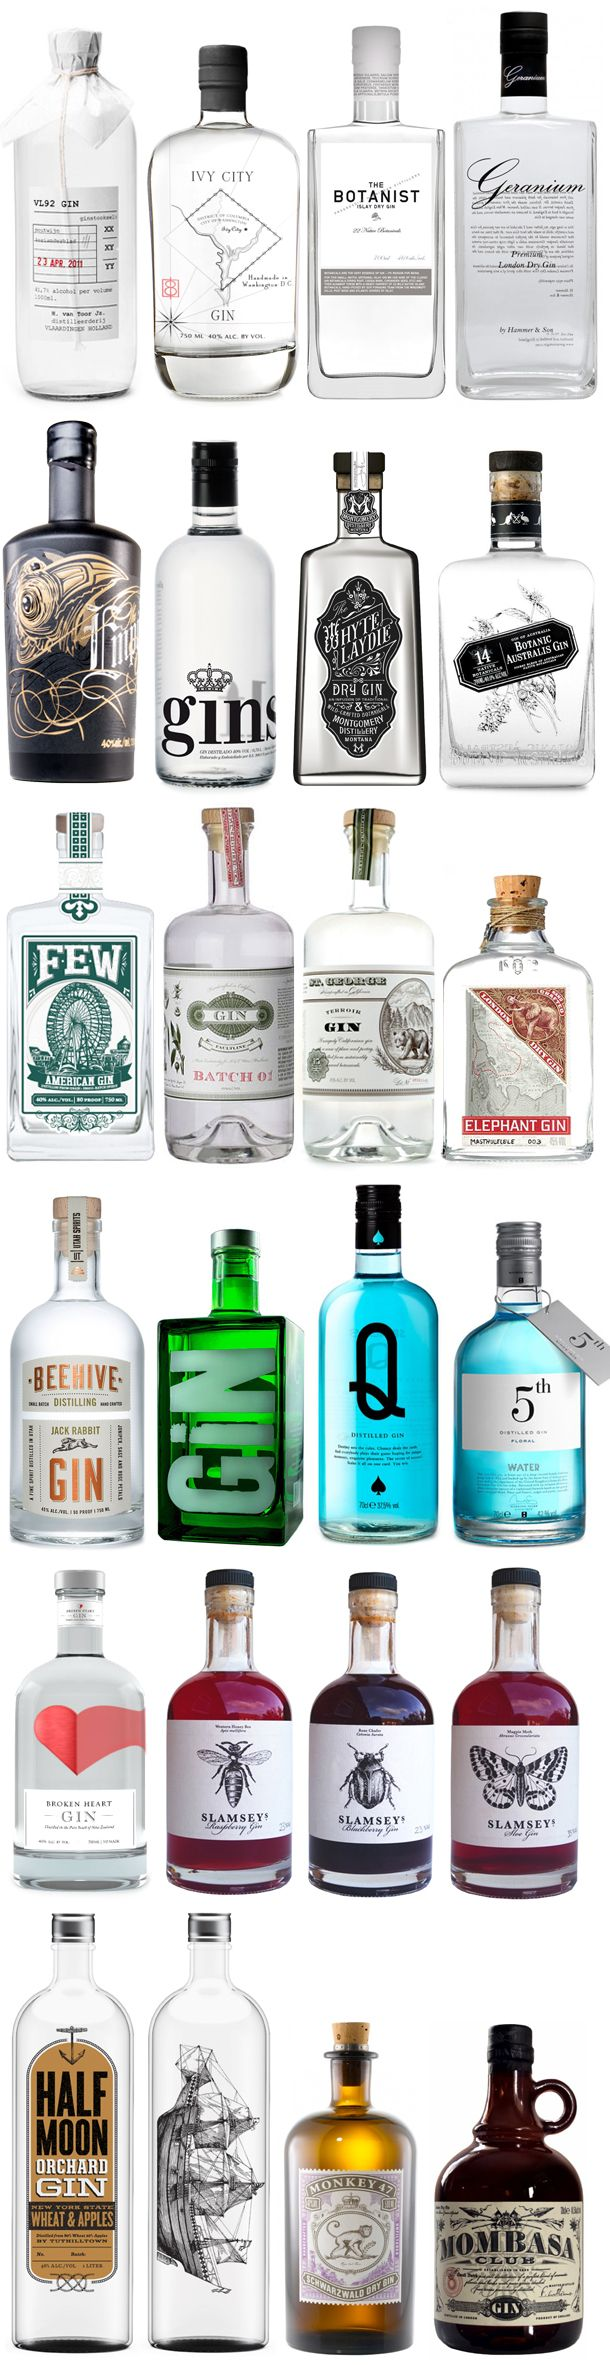 On such a friday, isn't it time for another booze round up? I've been trawling the interweb to give you the very best in my opinion. I did one of these gin round ups before, so if you're sitting th...